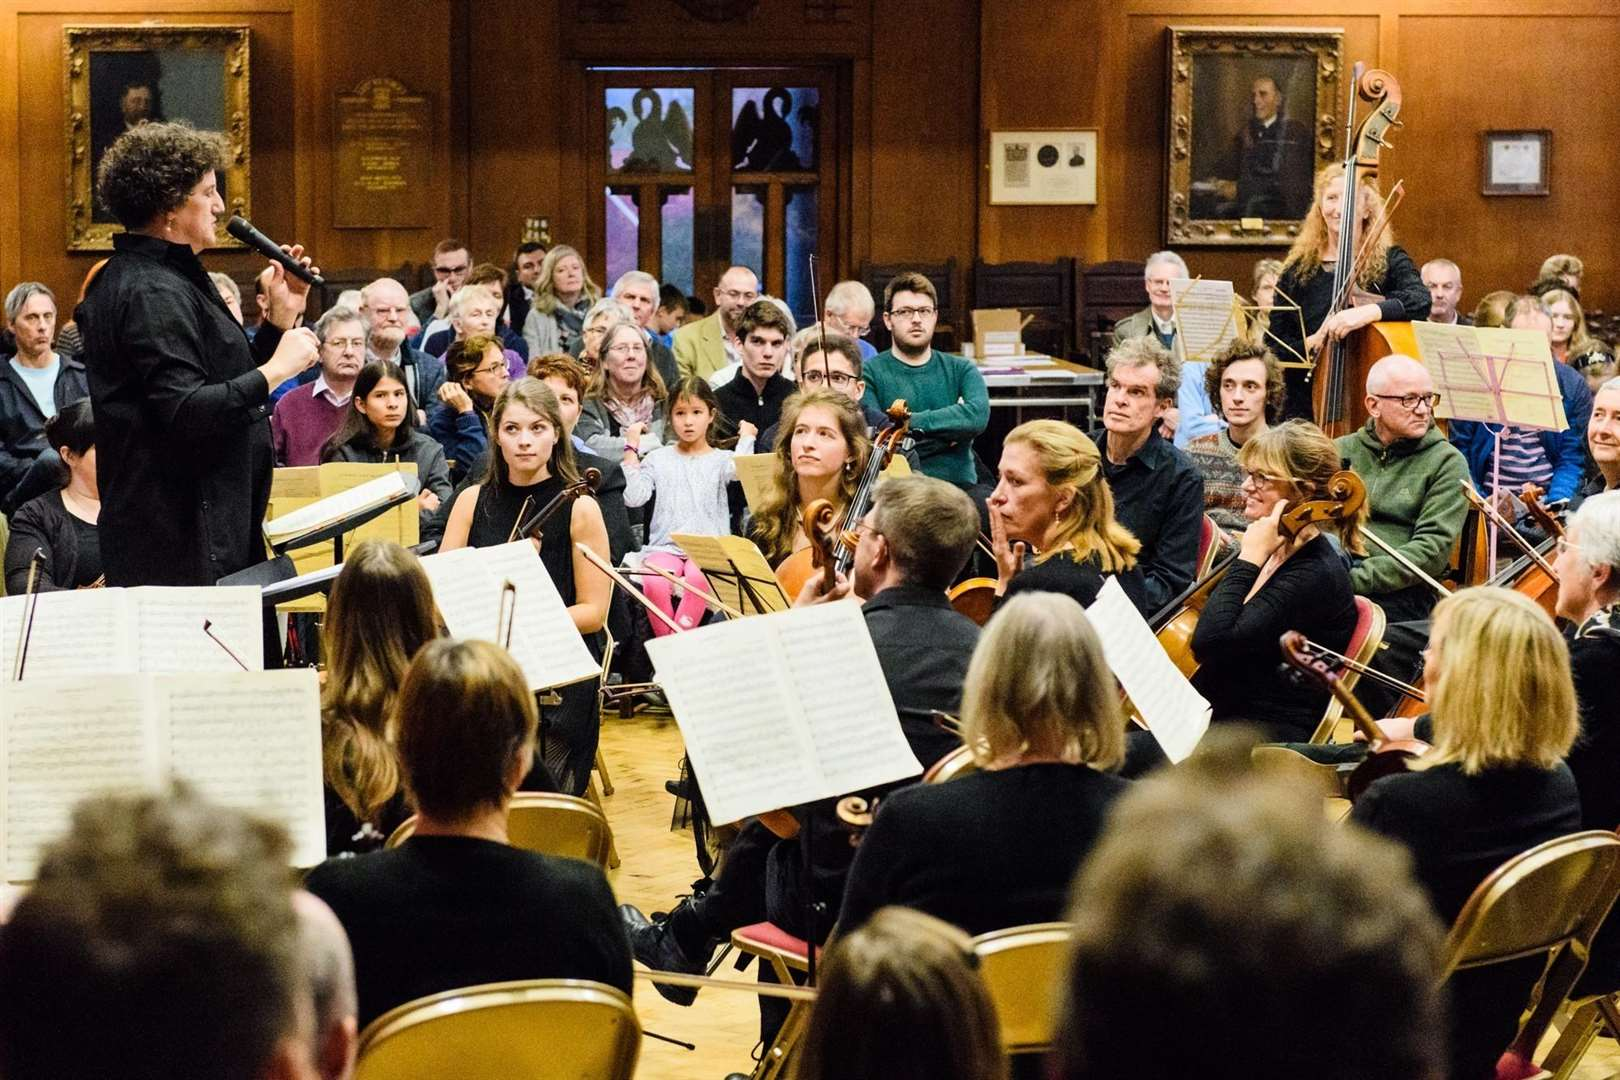 Rebecca Miller conducting Bishop's Stortford Sinfonia at its previous Inside the Orchestra performance at Bishop's Stortford College in November 2017 (6448454)